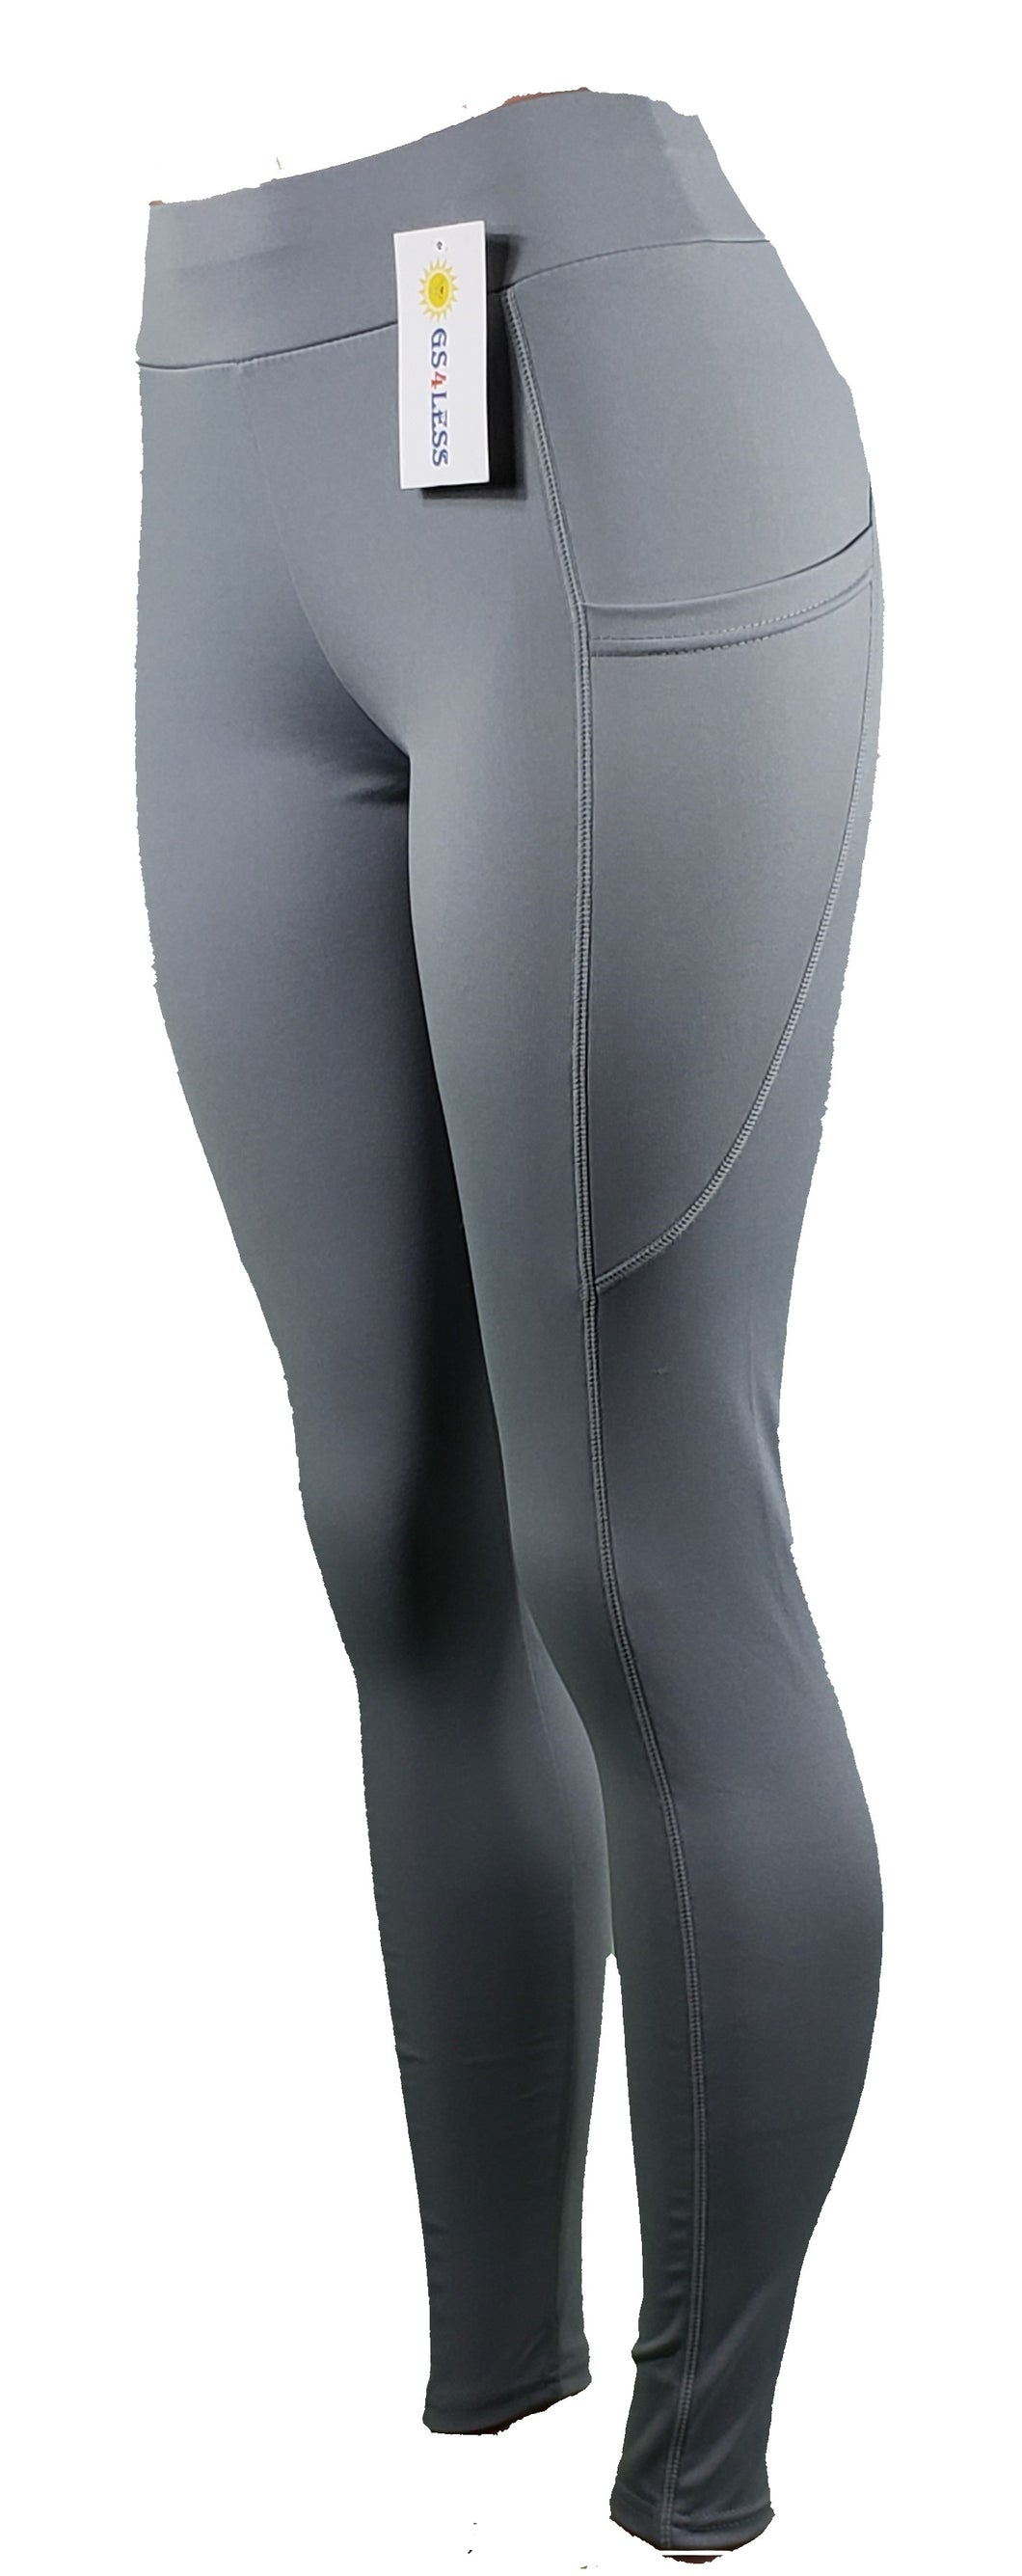 Gray sports leggings with pockets - GS4LESS